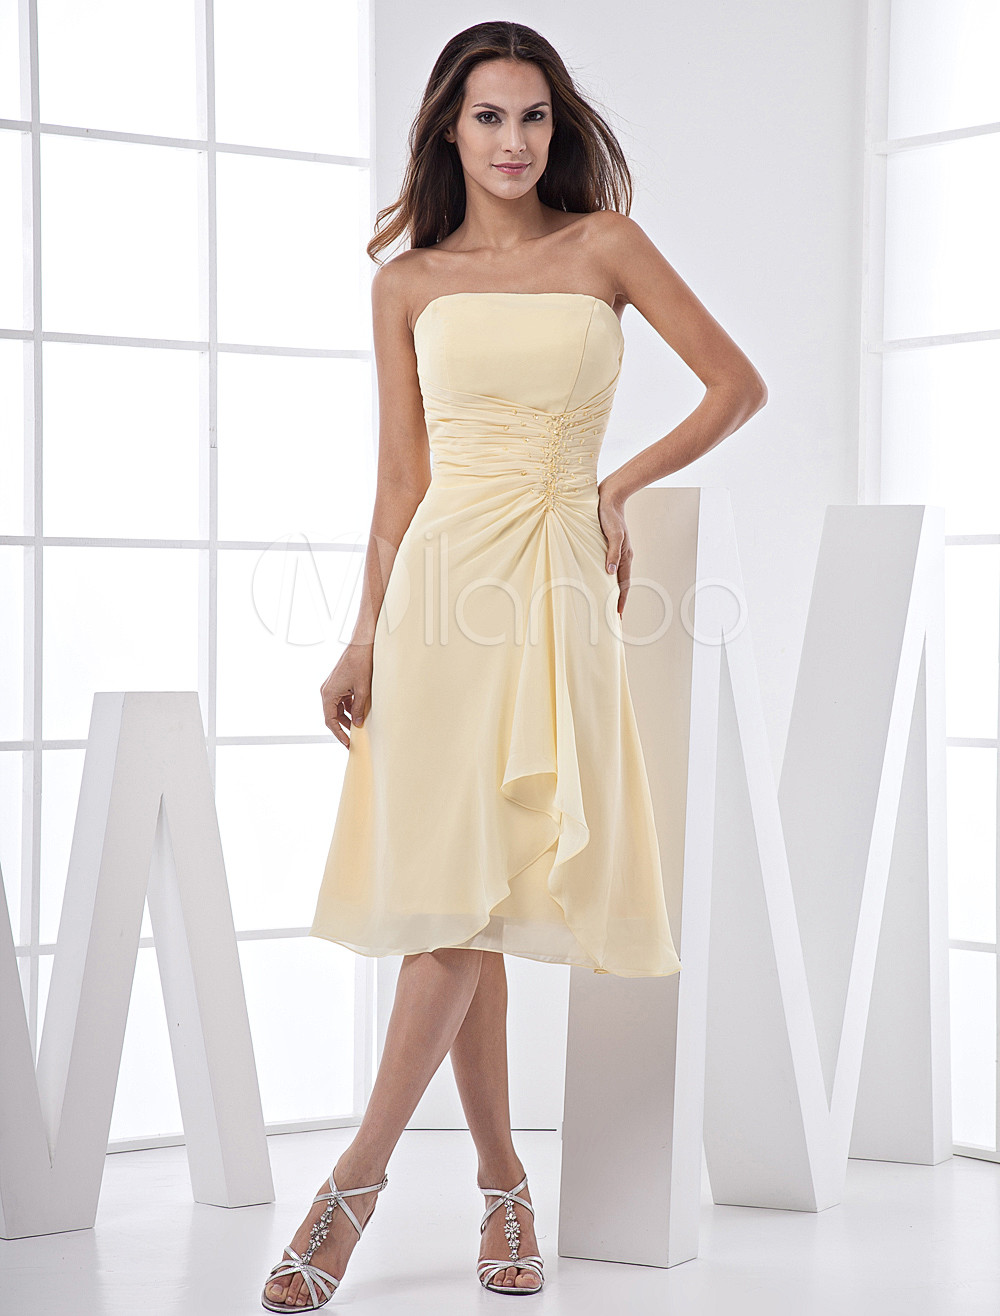 A-line Tea-Length Bridesmaid Dress With Drape Front